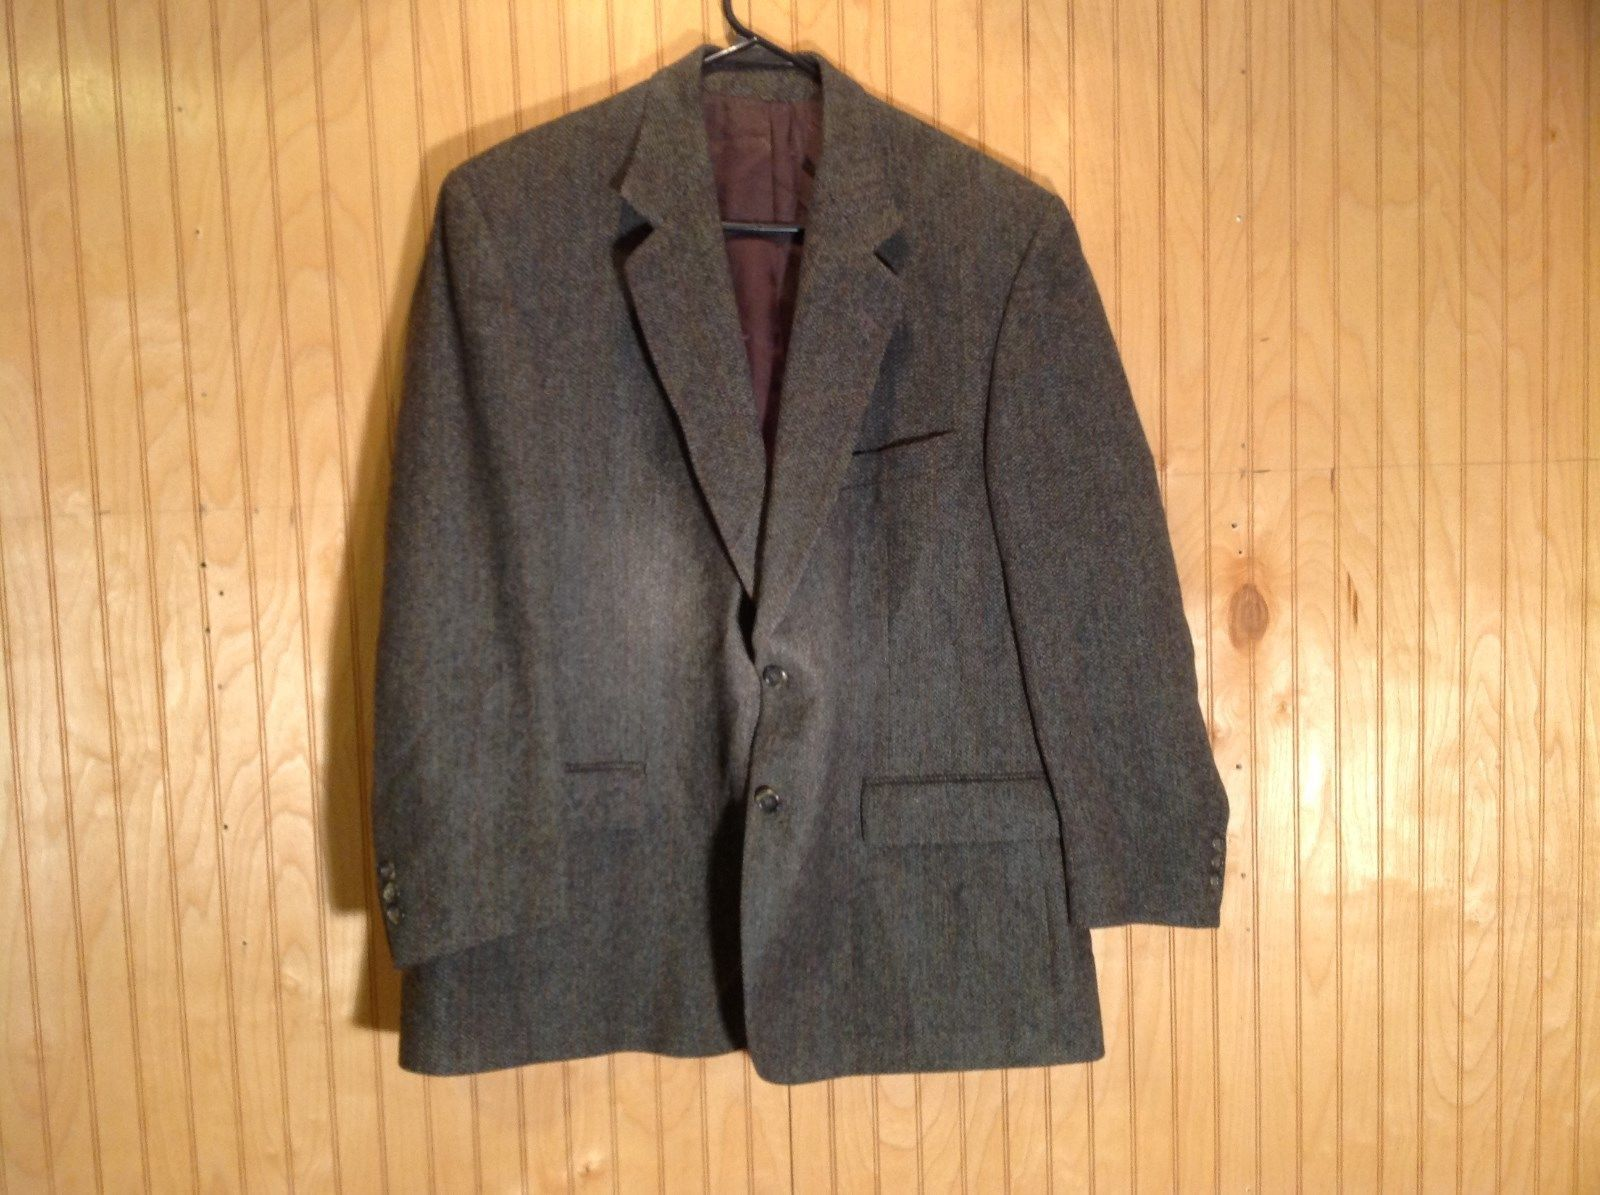 Cricketeer Gray Sport Coat 100 Percent Wool Yellow Blue Red in Fabric  No Tags